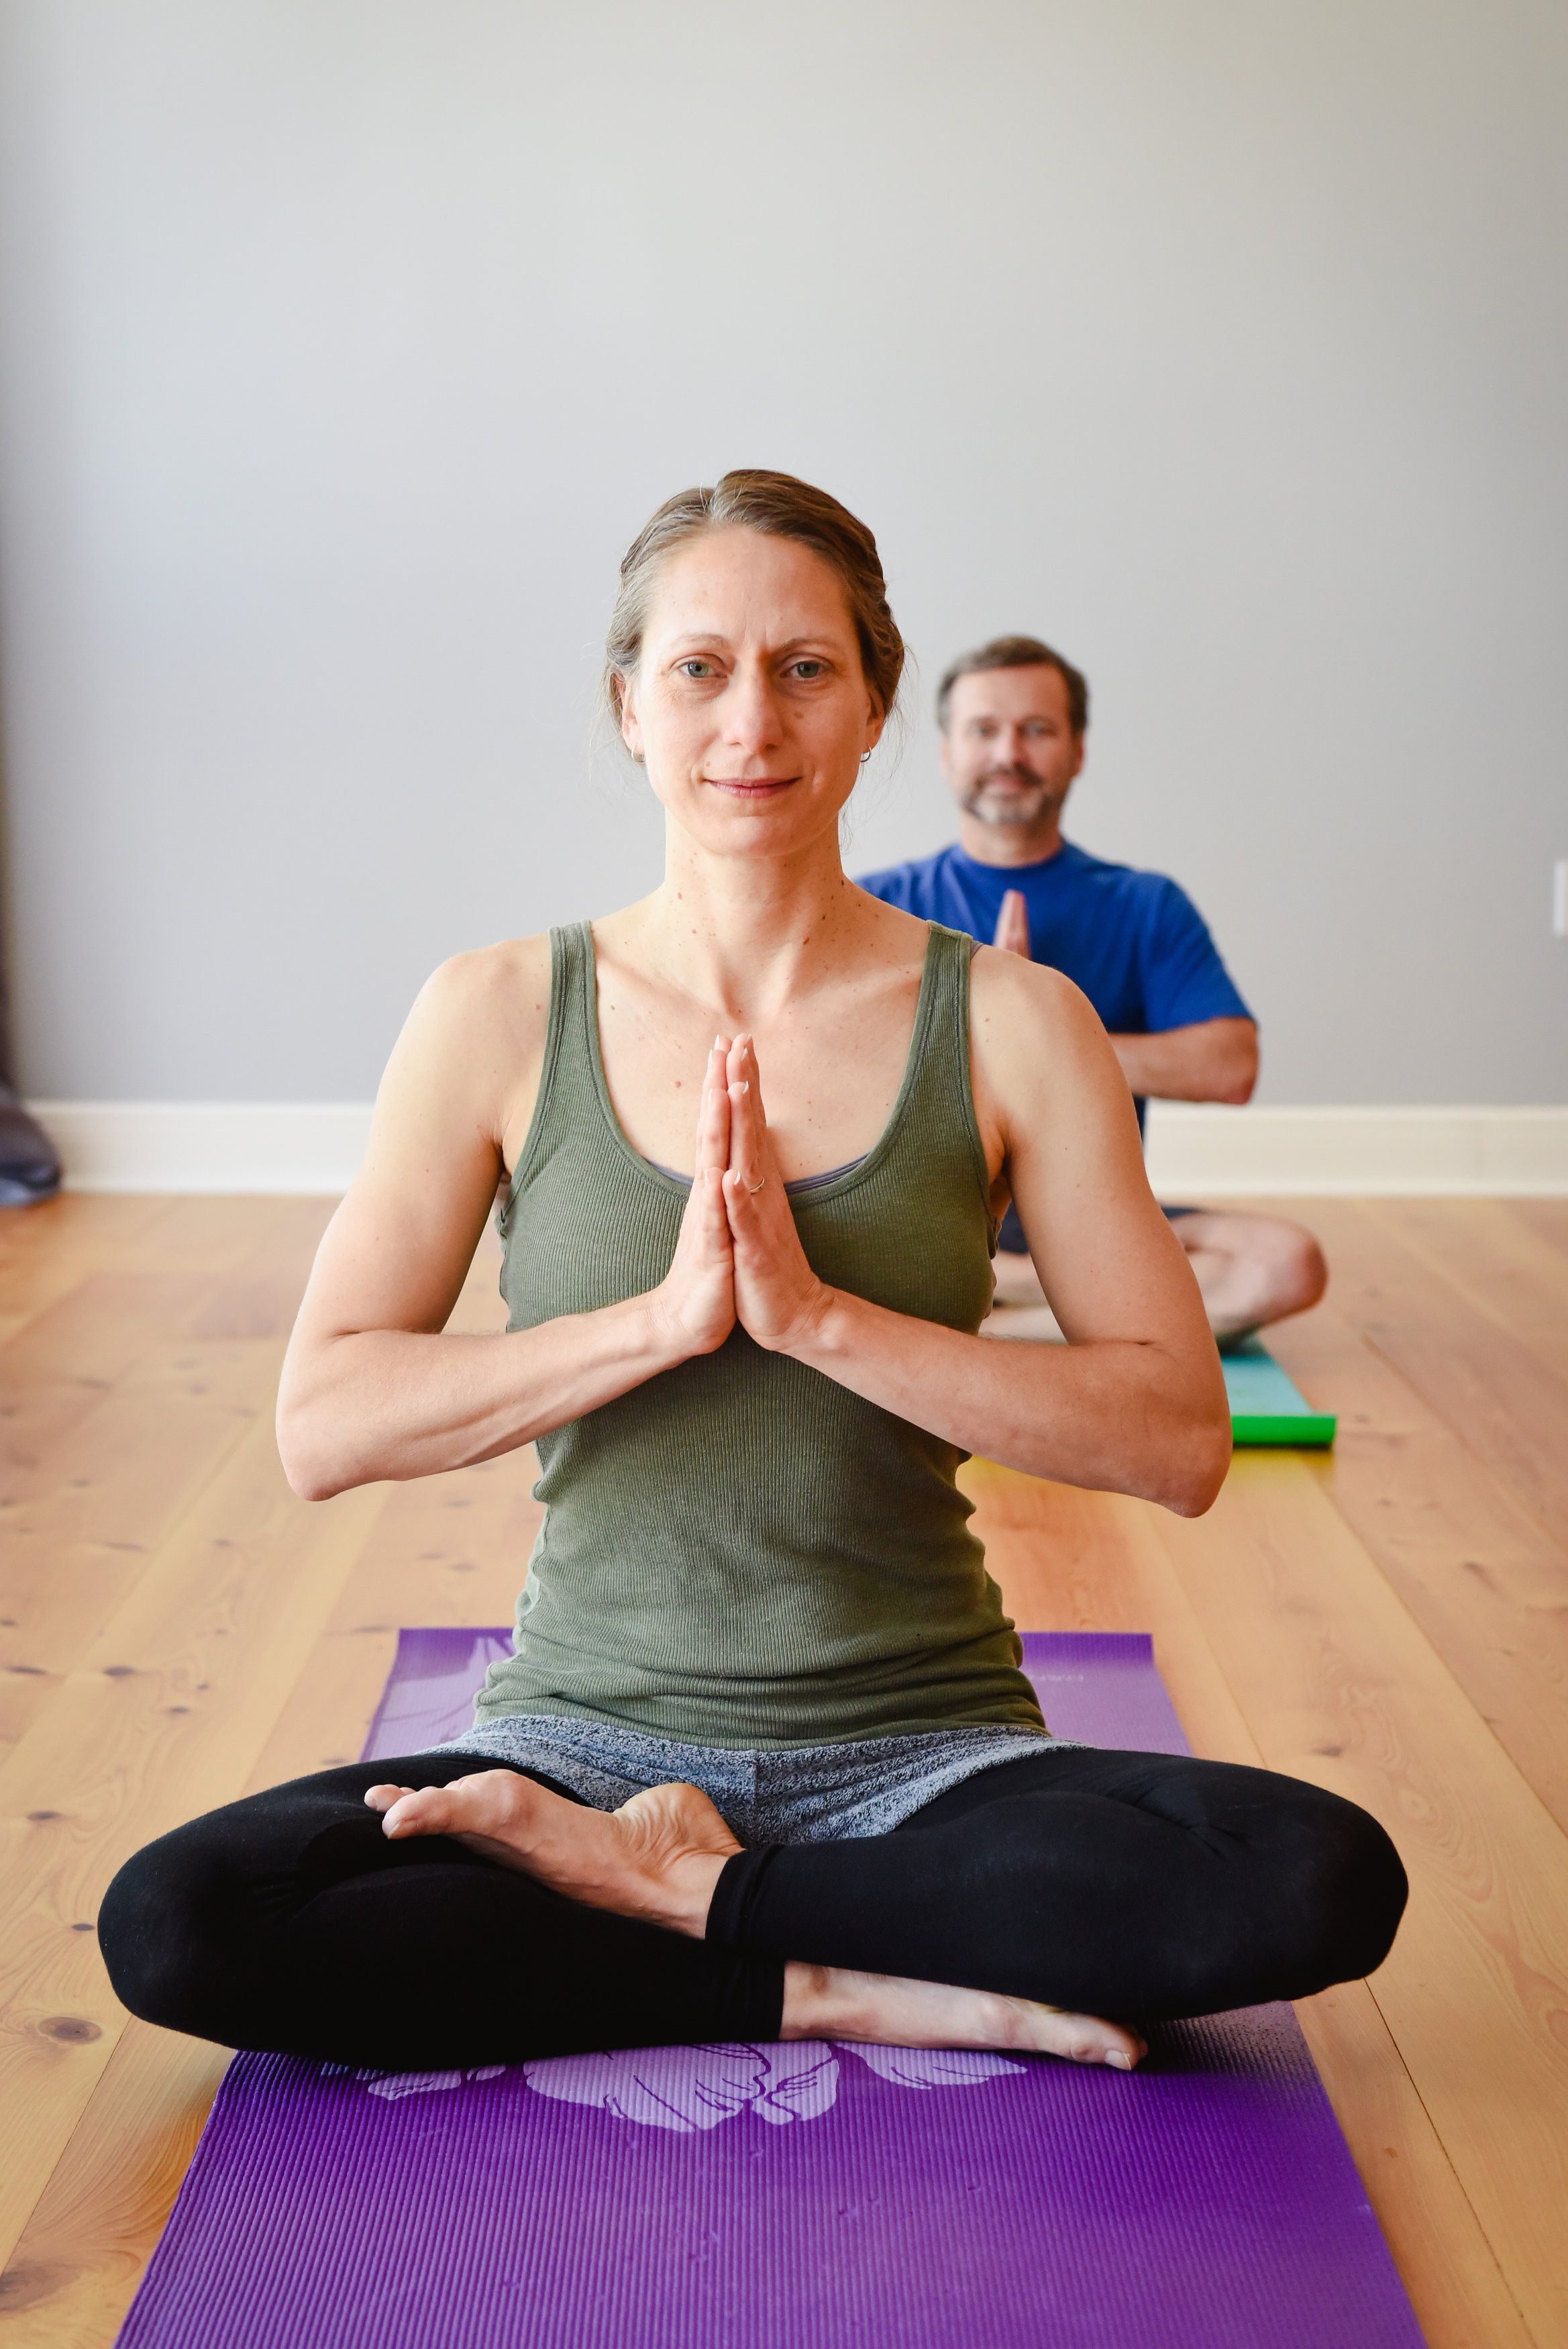 Personal Portrait of a Yoga Student